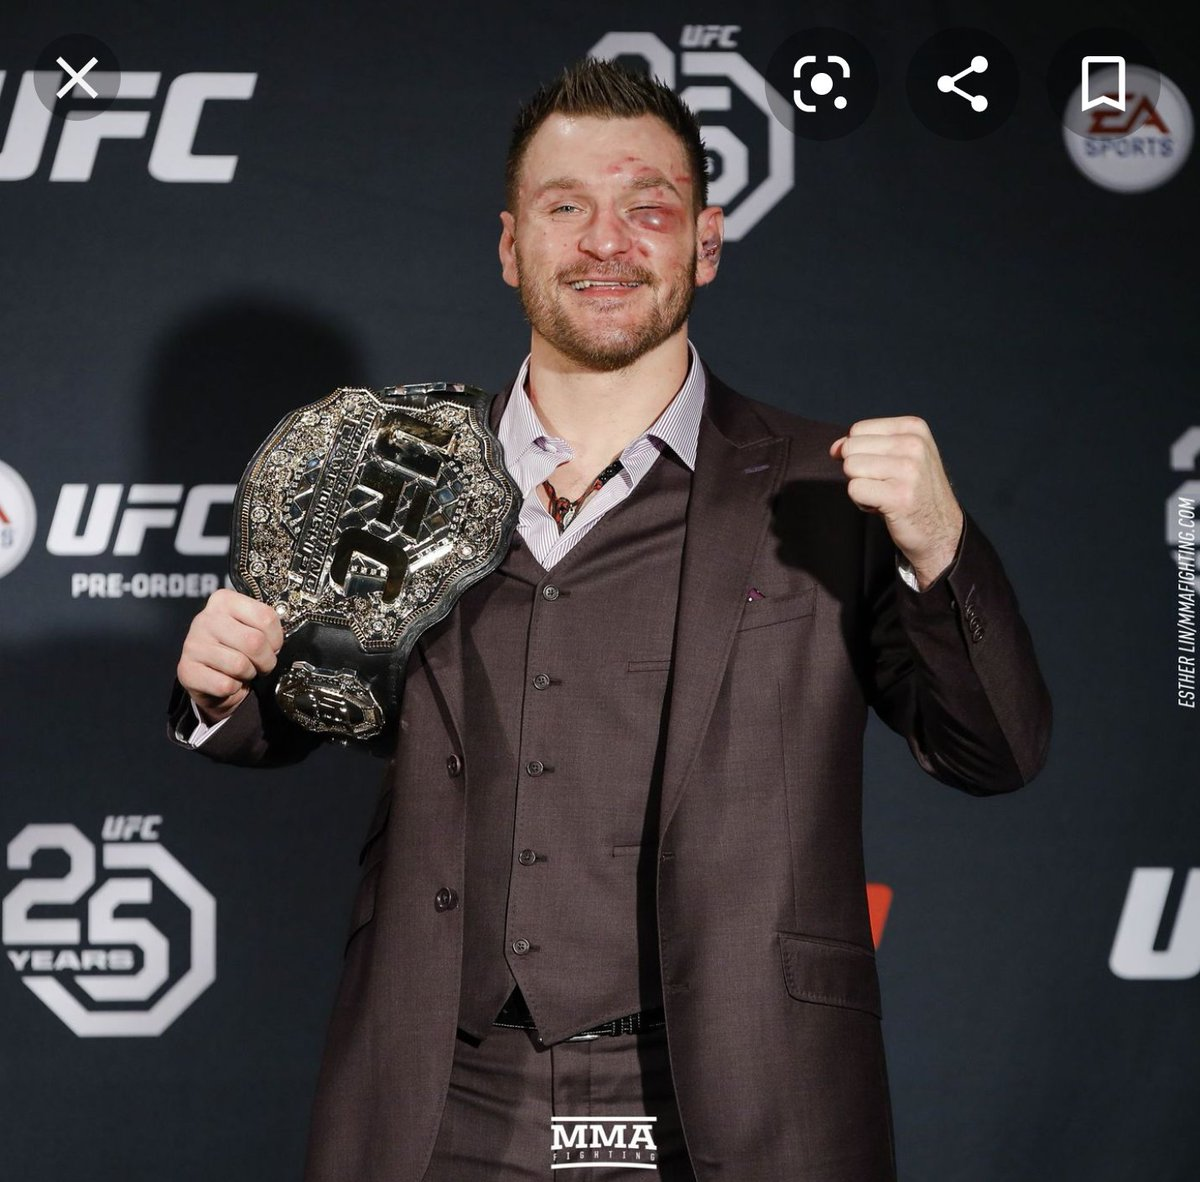 He totally didn't get near Stipe right.....pic.twitter.com/0SkfLYbQwe